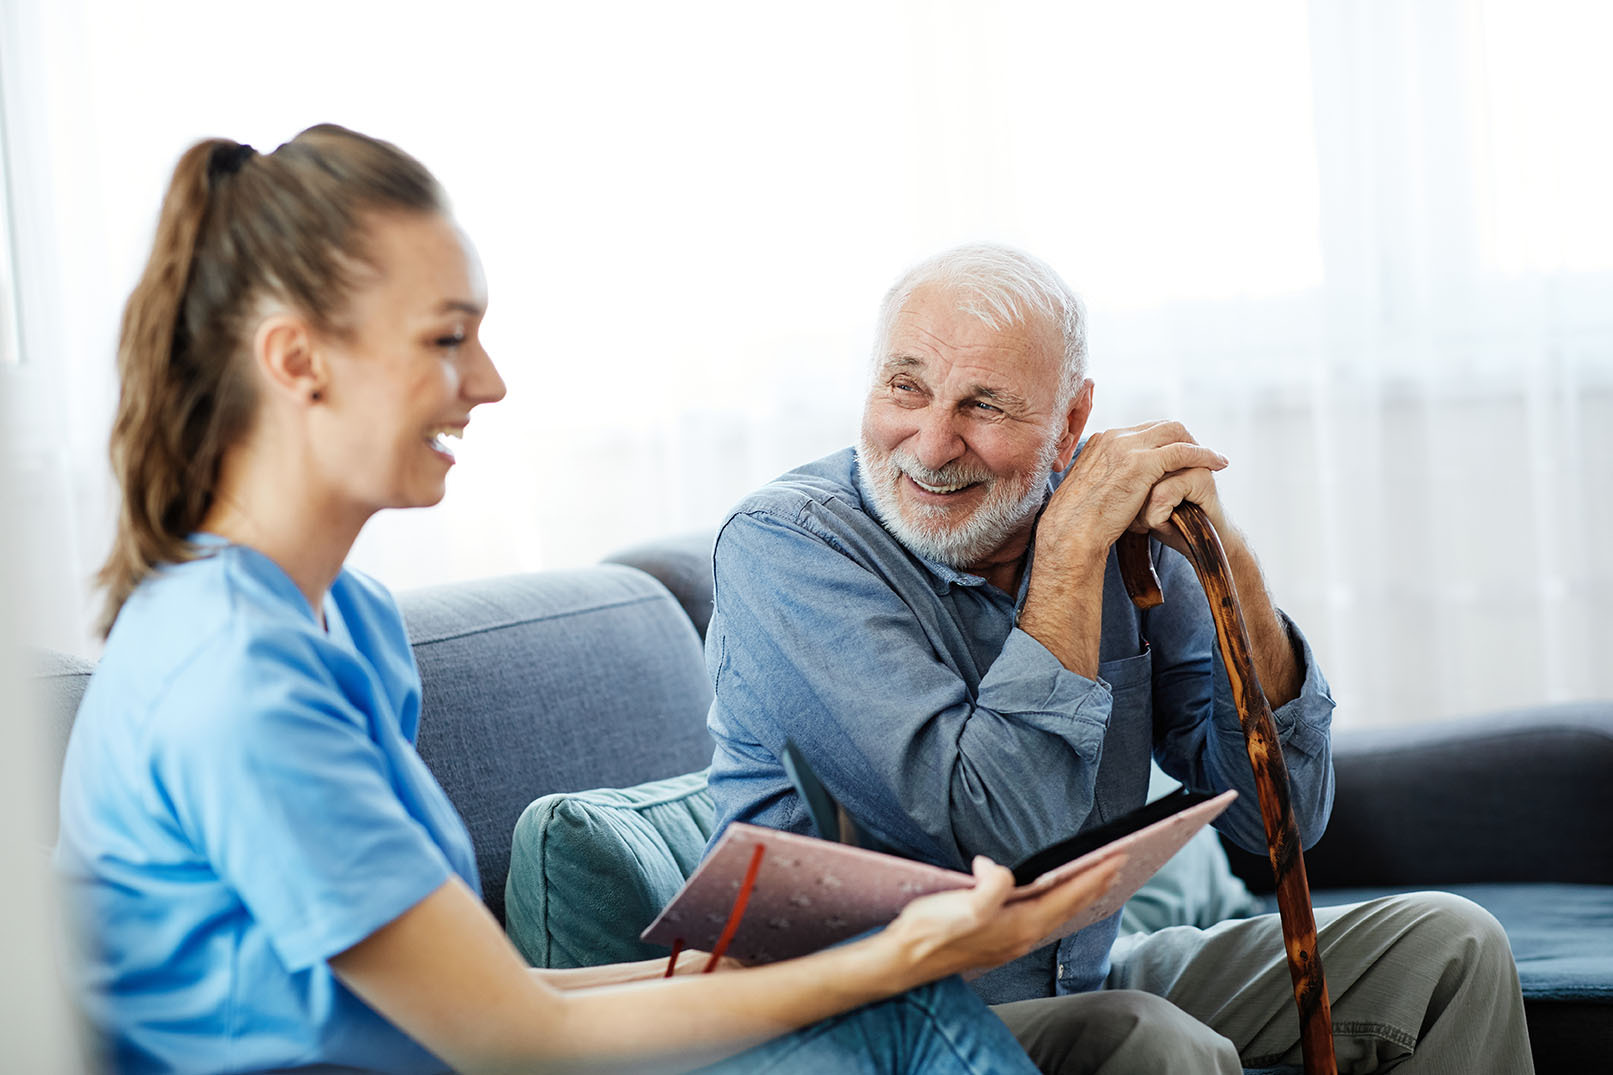 Amana Living nursing homes provide permanent accommodation and 24-hour care and services for those who are no longer able to live in their own home